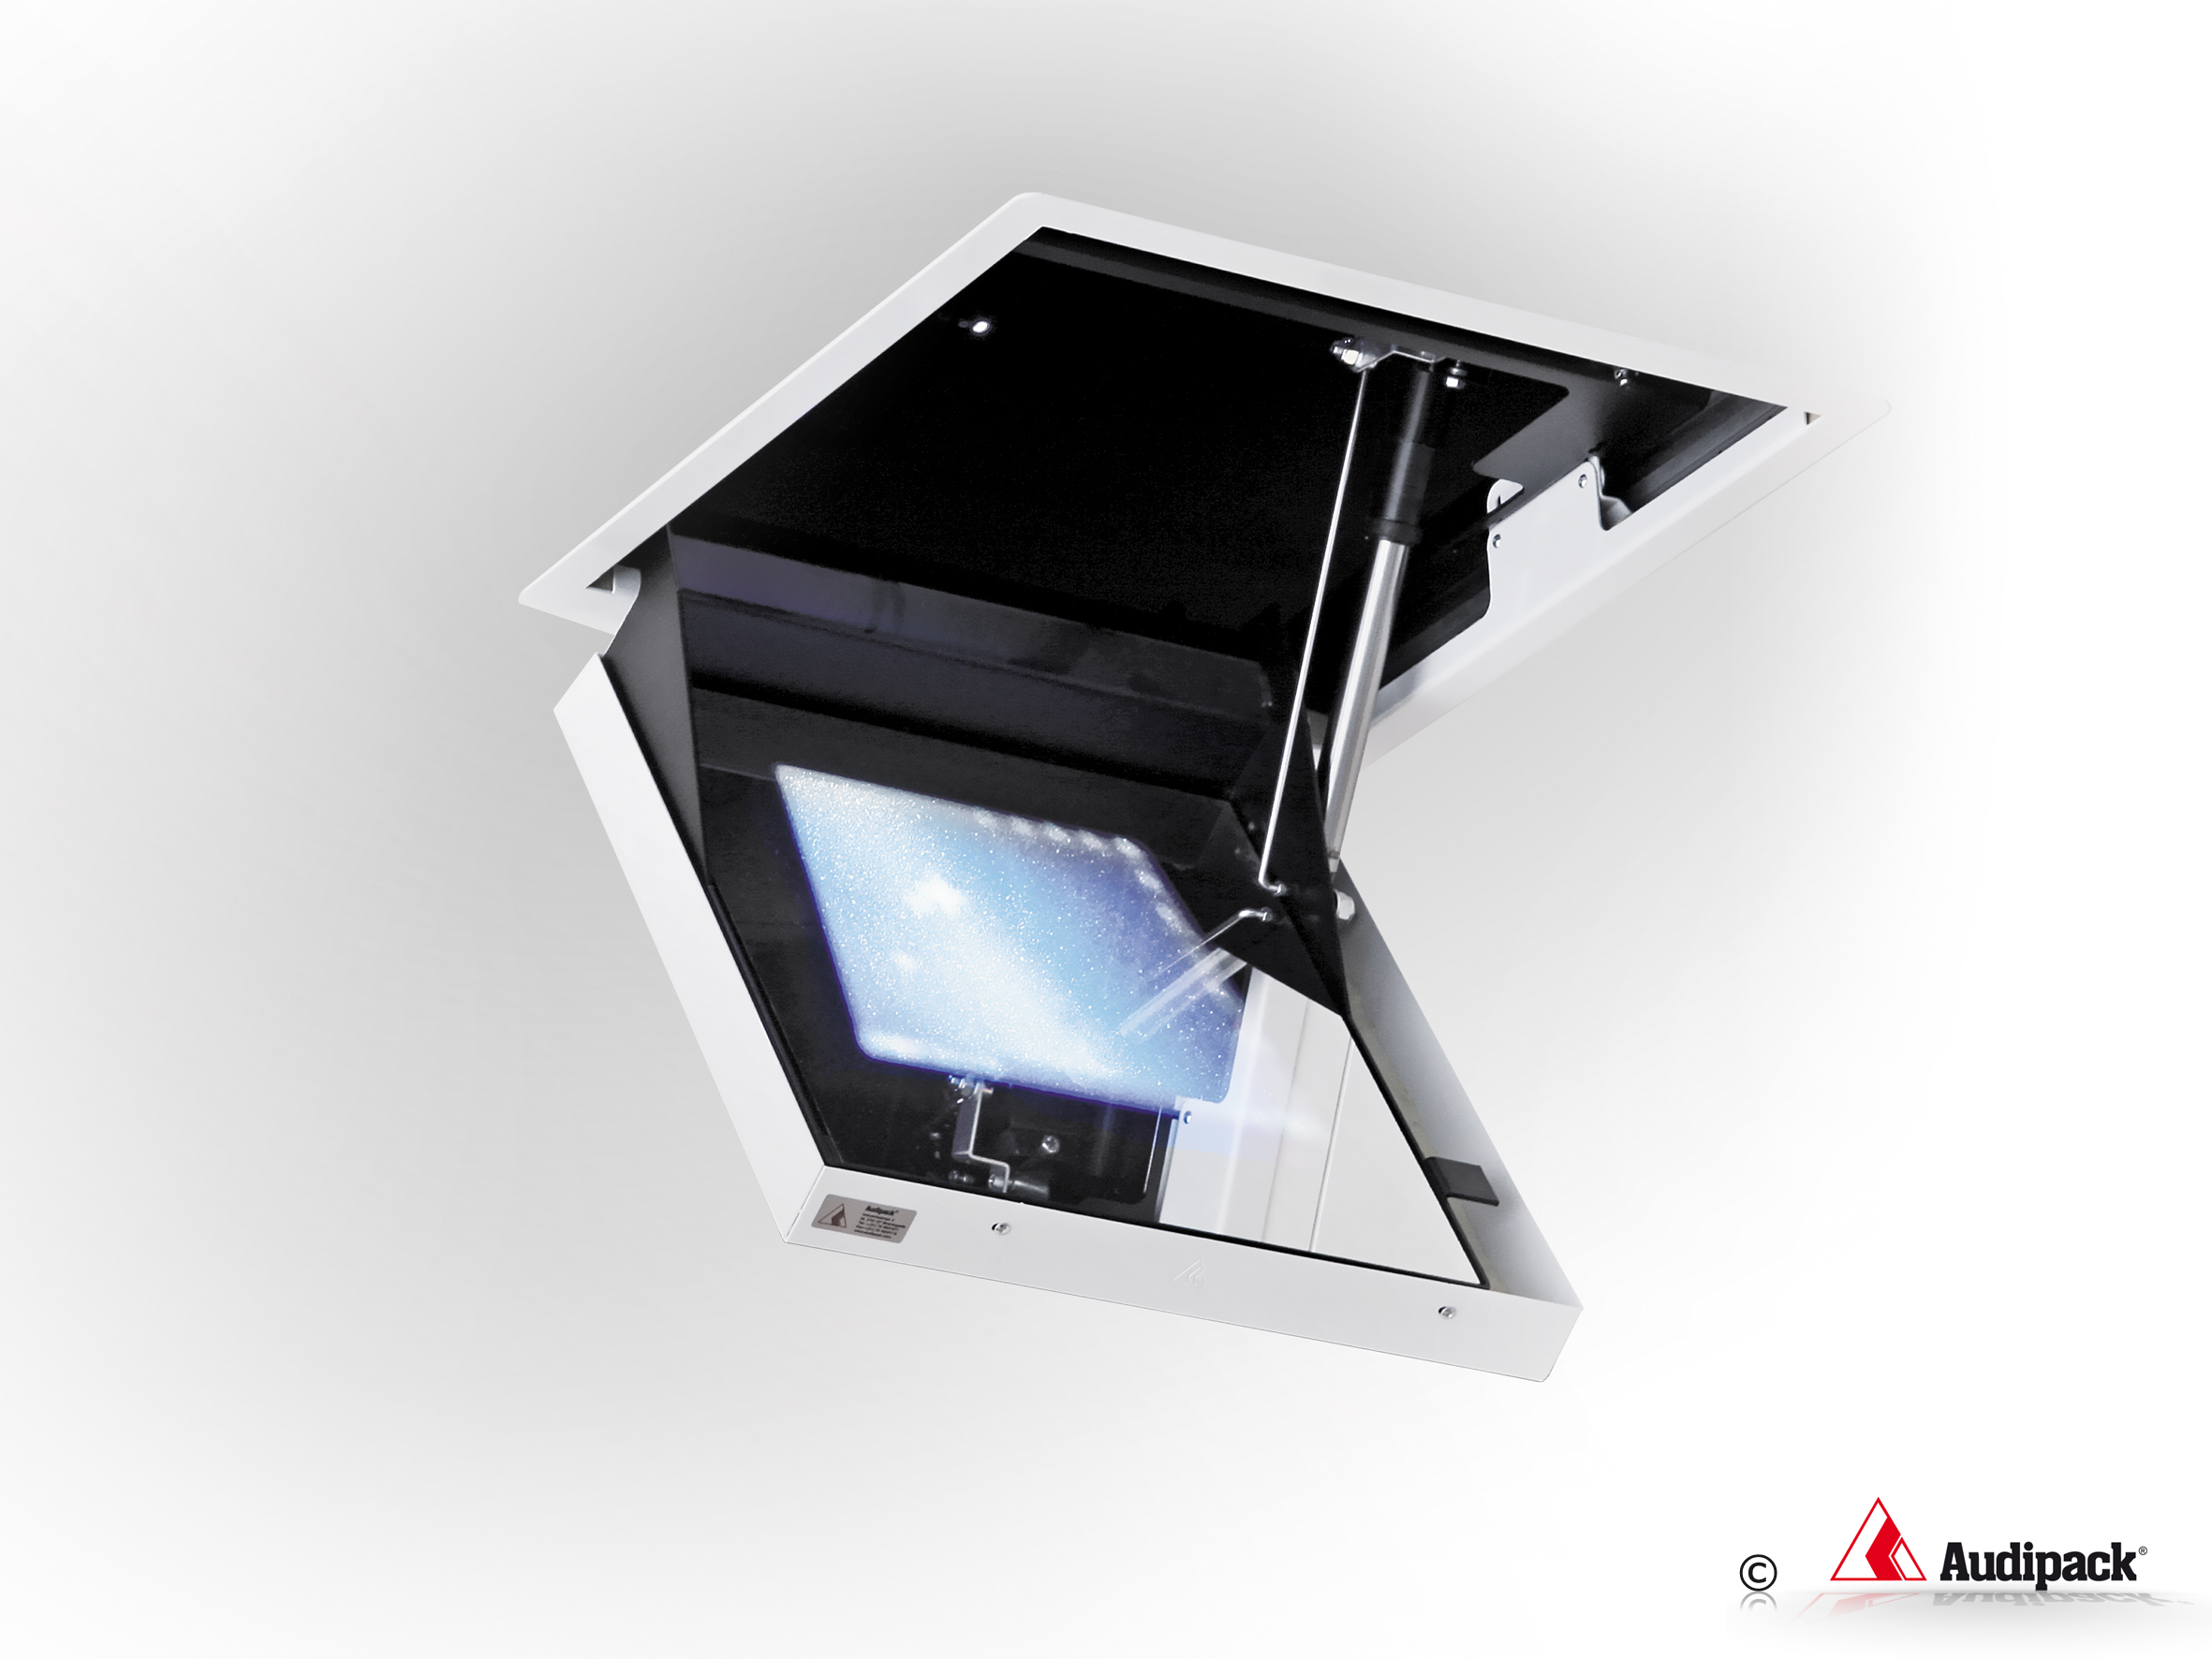 mirror kit systems audipack it 39 s great to have solutions ForMirror Projector